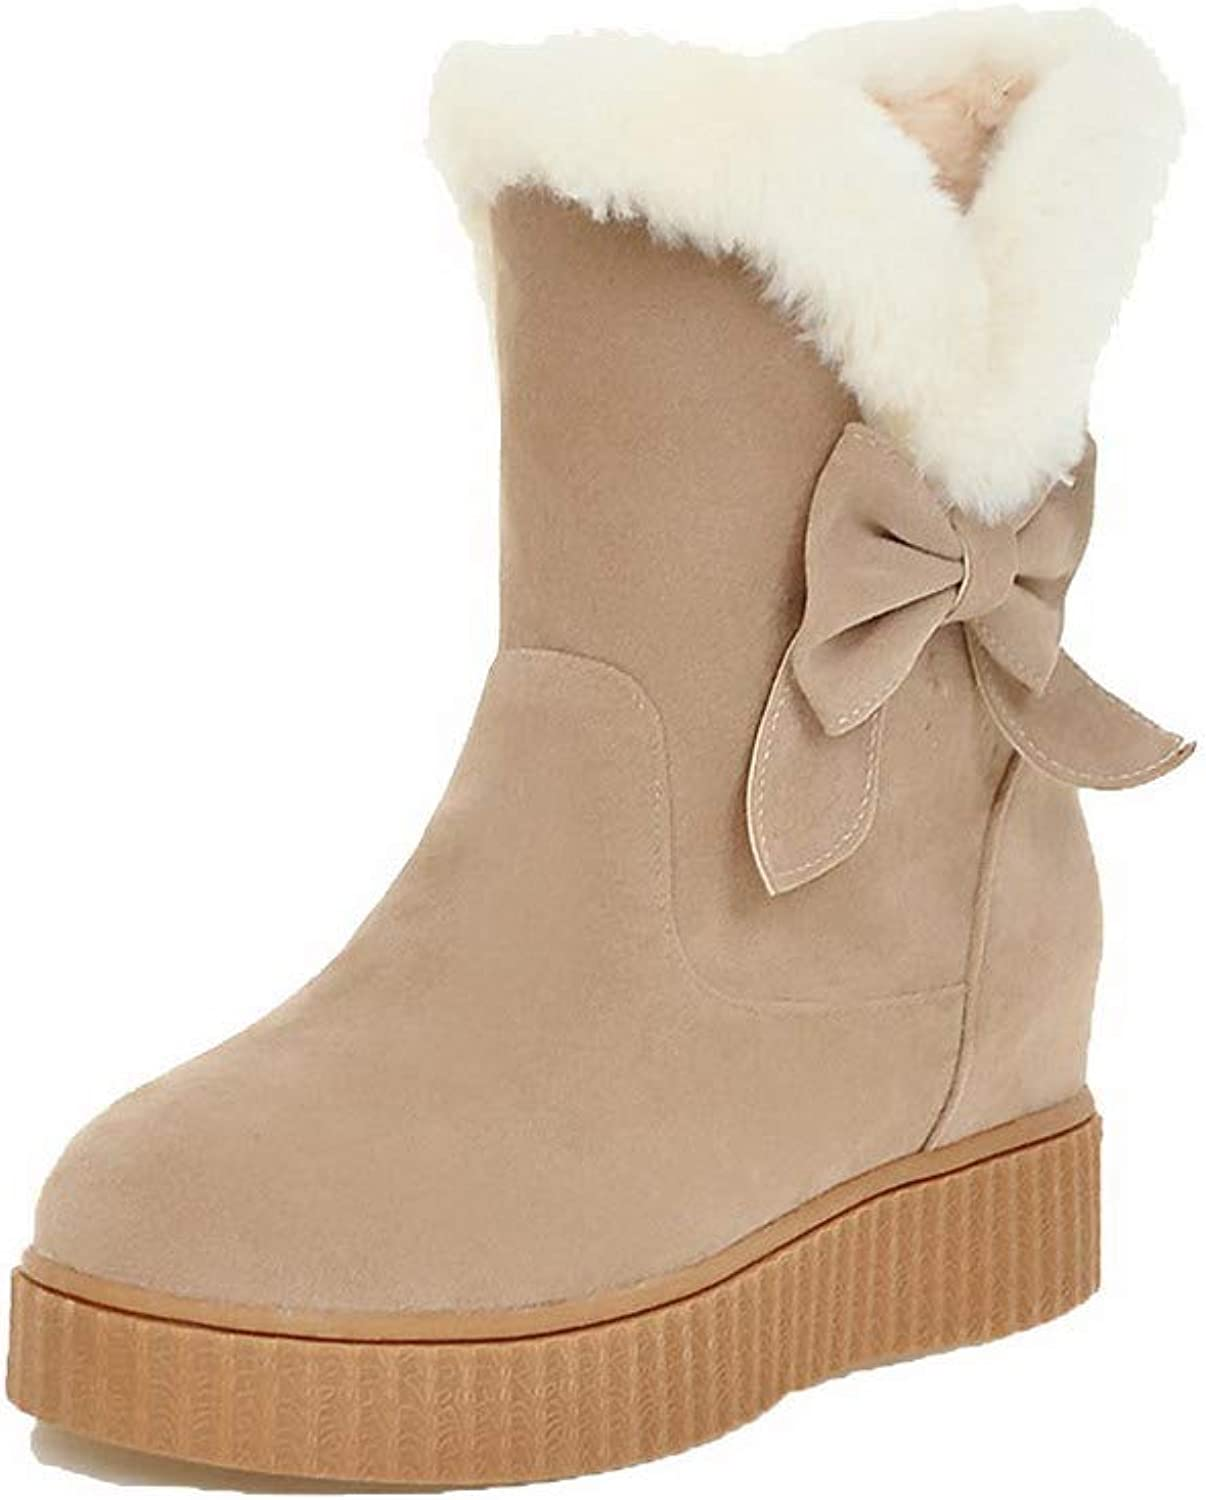 AmoonyFashion Women's Pull-On Kitten-Heels Frosted Assorted color Low-Top Boots, BUTXT024862